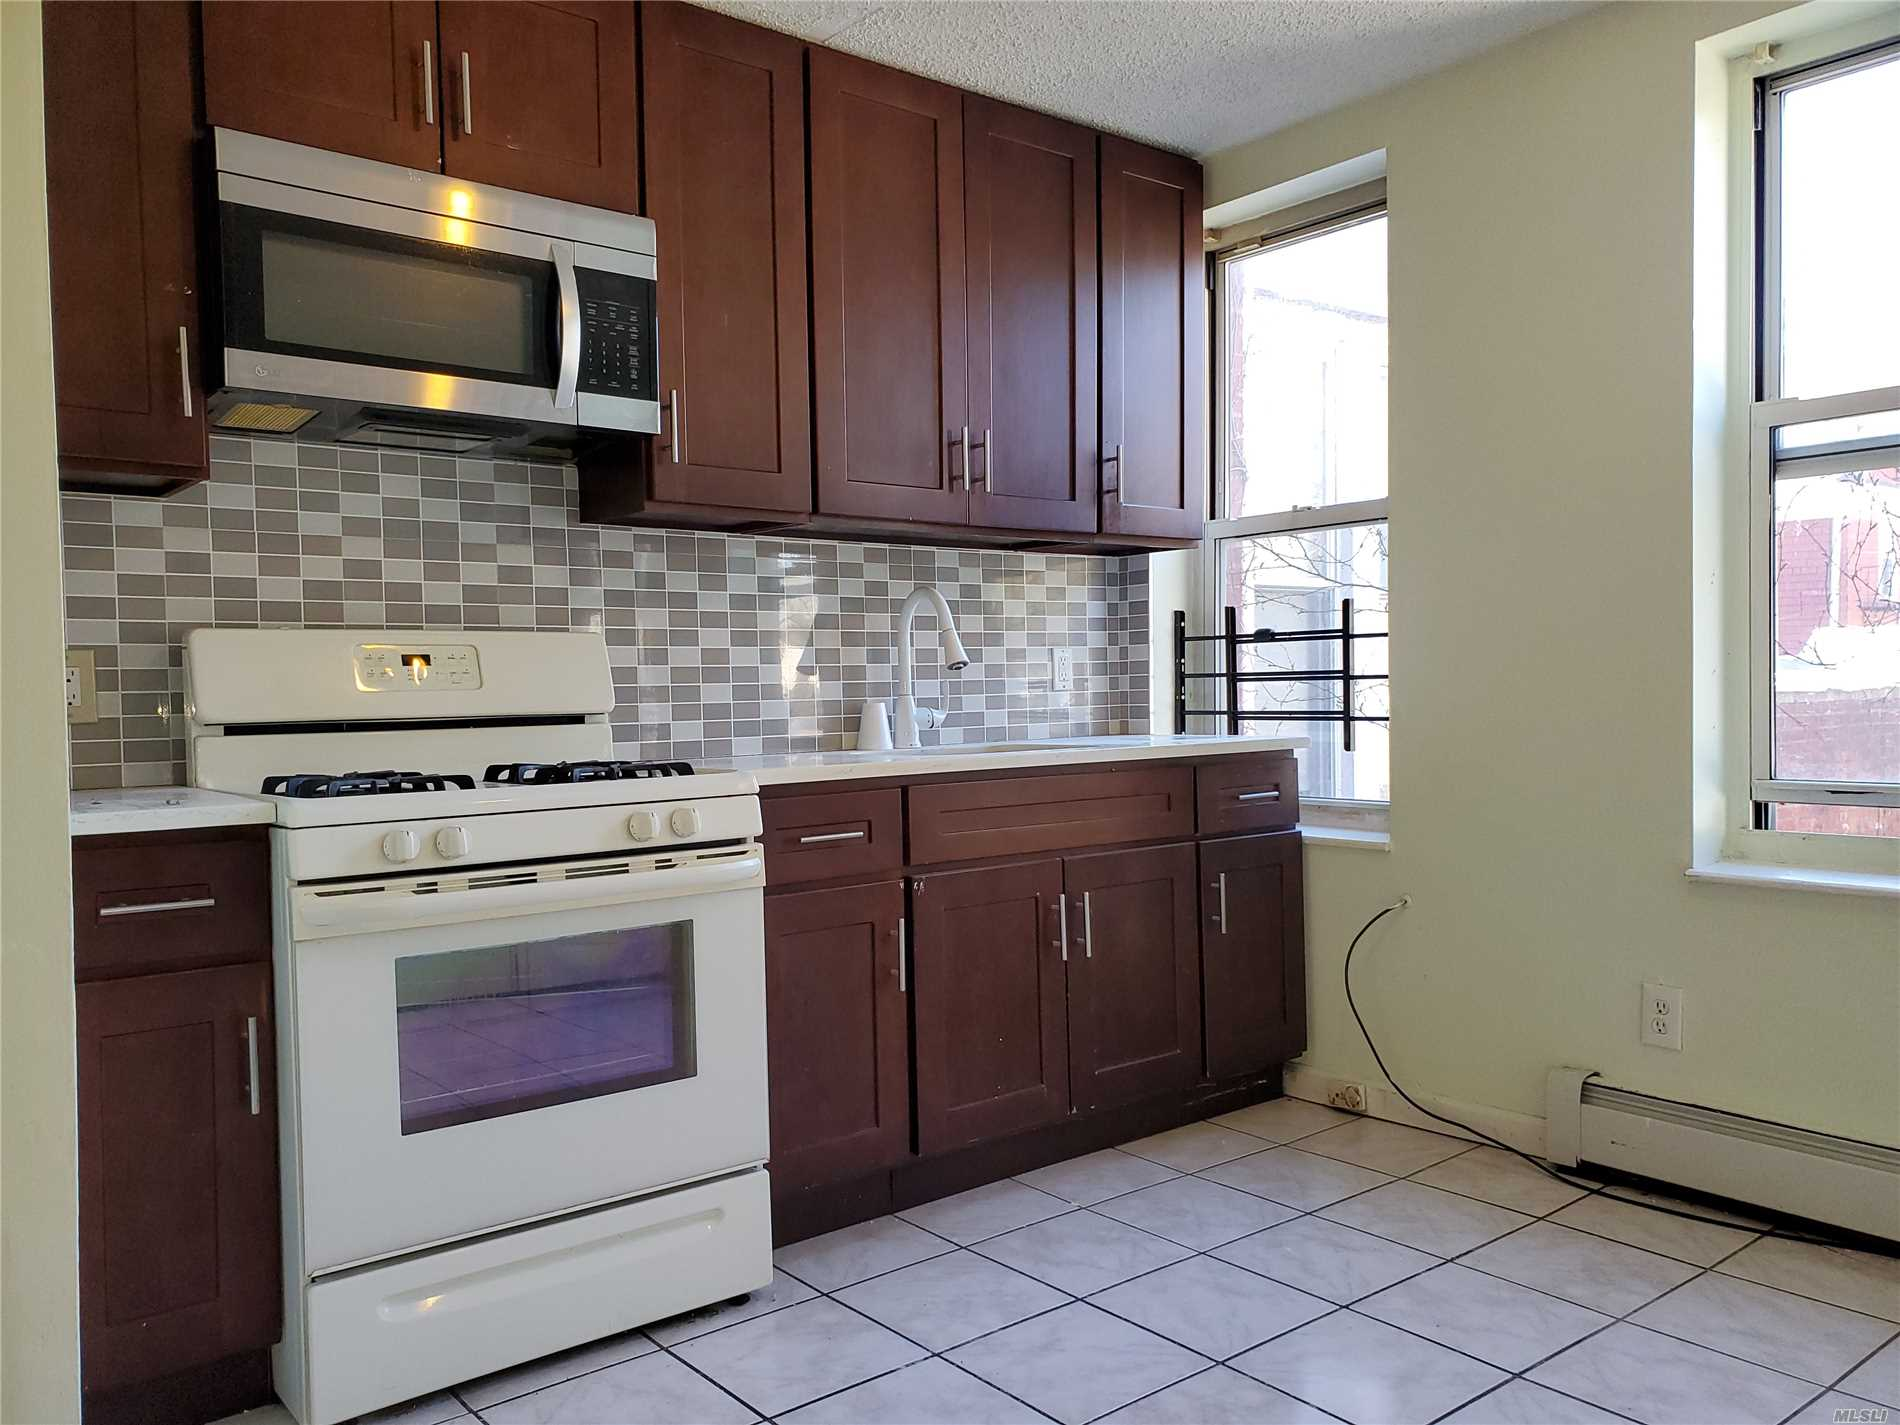 2-Bedrooms R/R Style, walk to local shopping, house of worship, public transportation and much more.